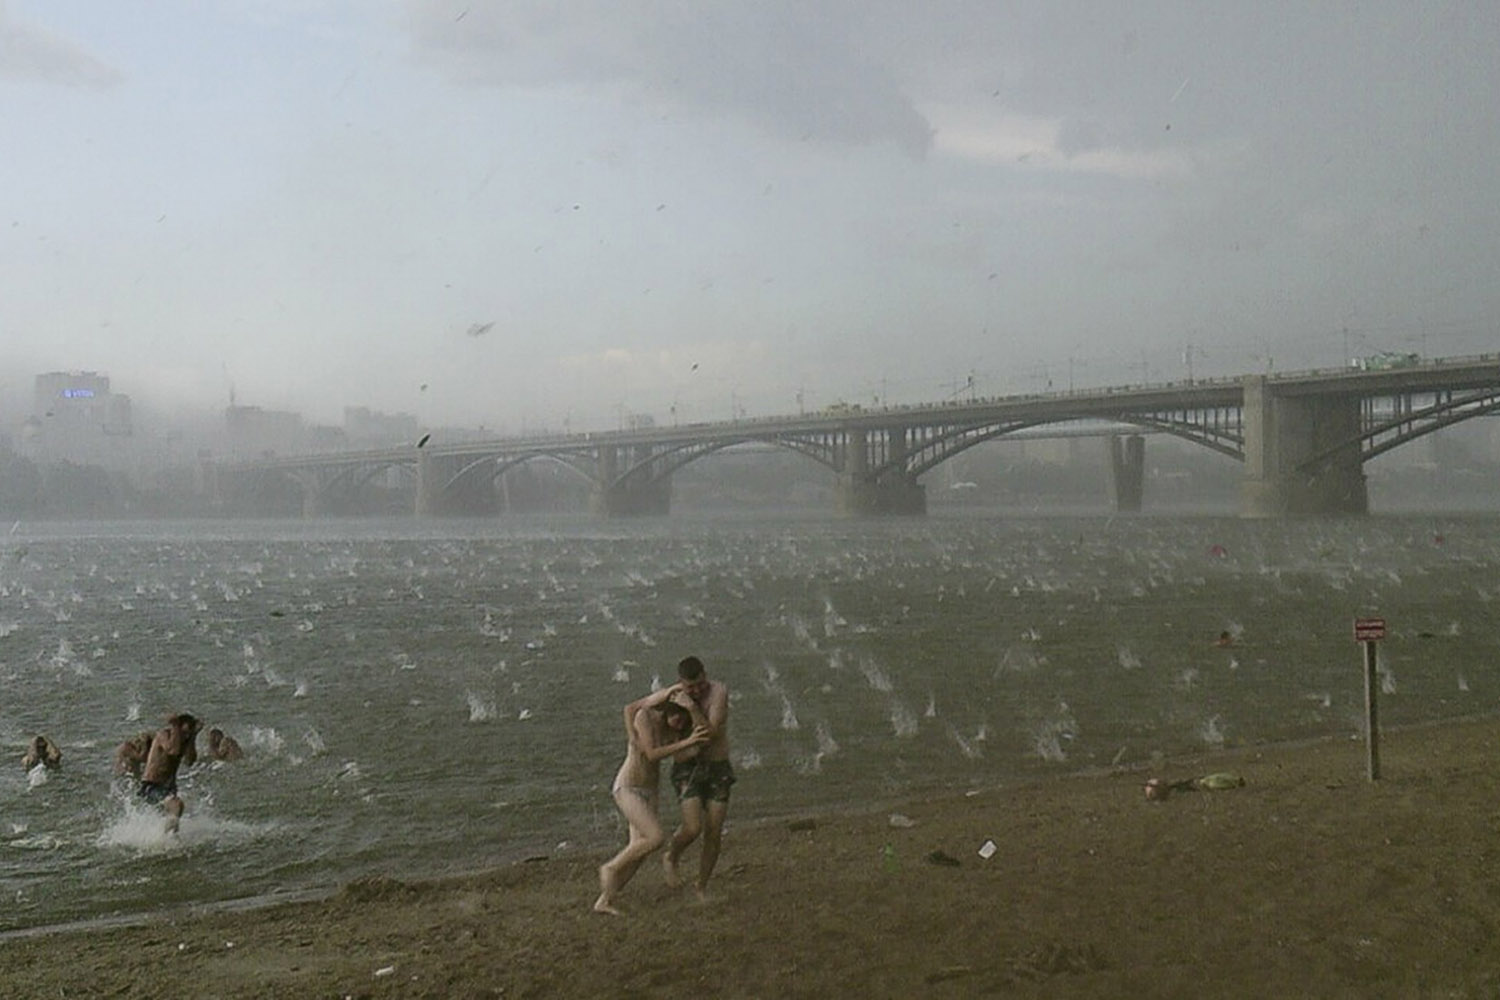 Jul. 12, 2014. People run to shelter from a hailstorm on the beach at Ob River, the major river in western Siberia in Novosibirsk, Russia.